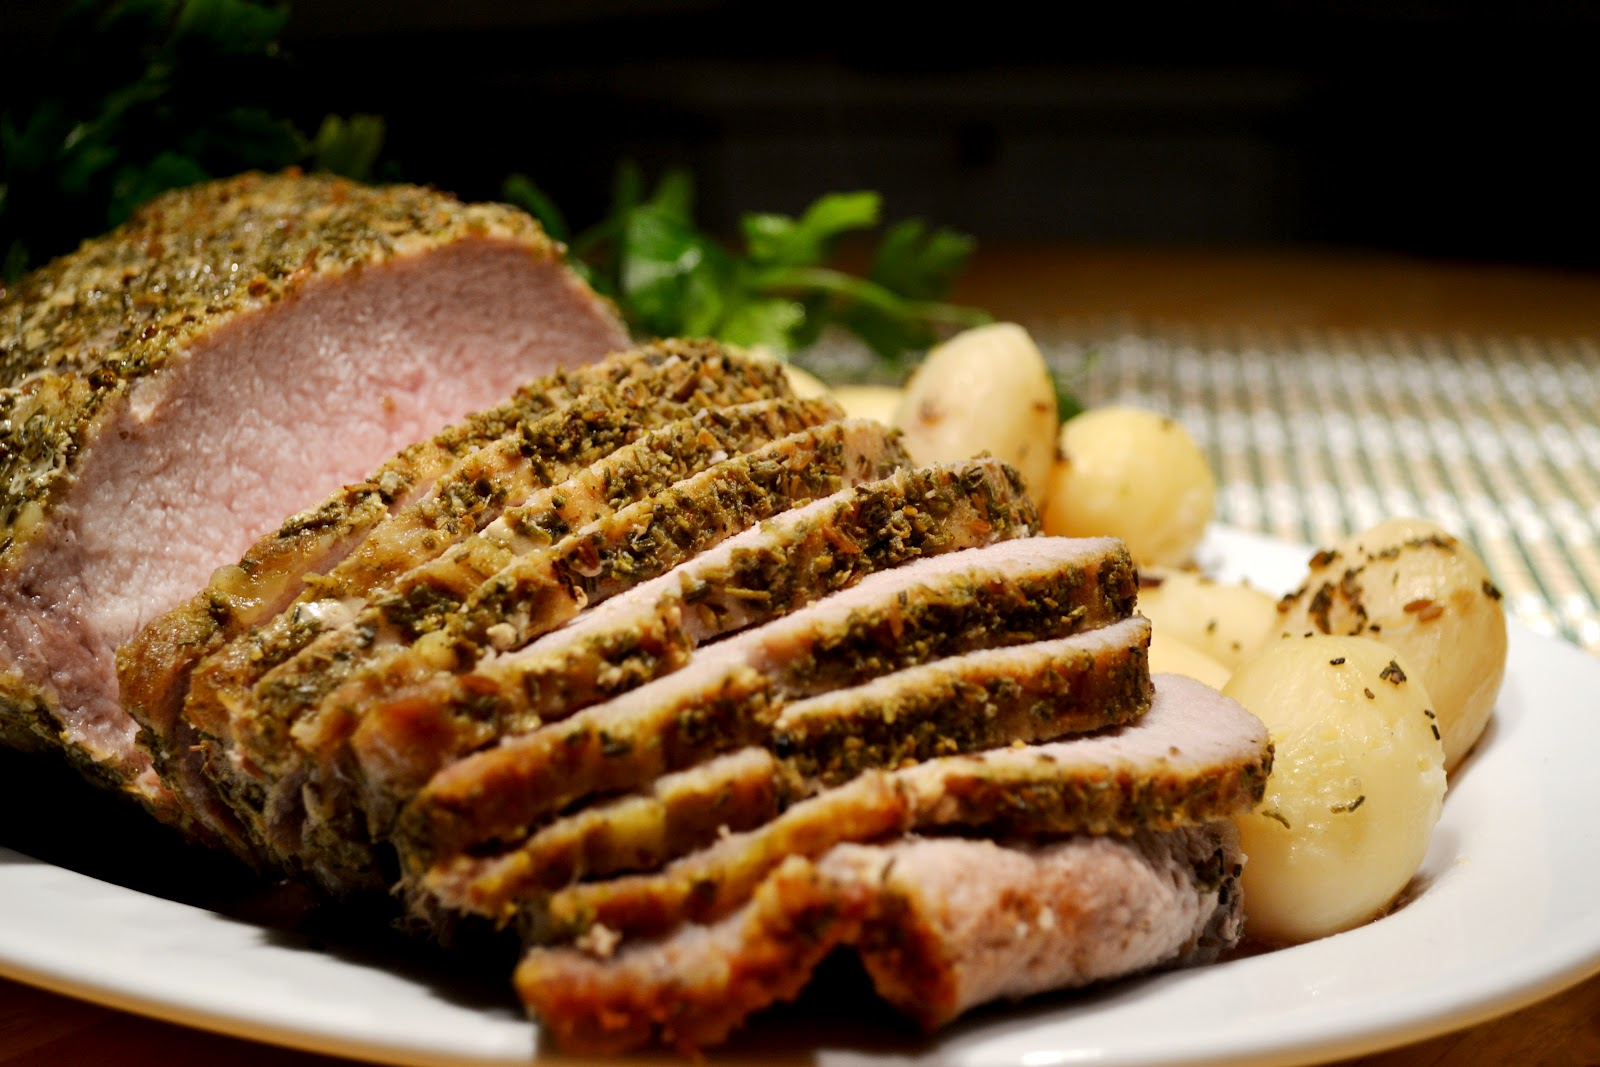 Food: Fashionable Delights: Yuly's Herb Crusted Pork Tenderloin